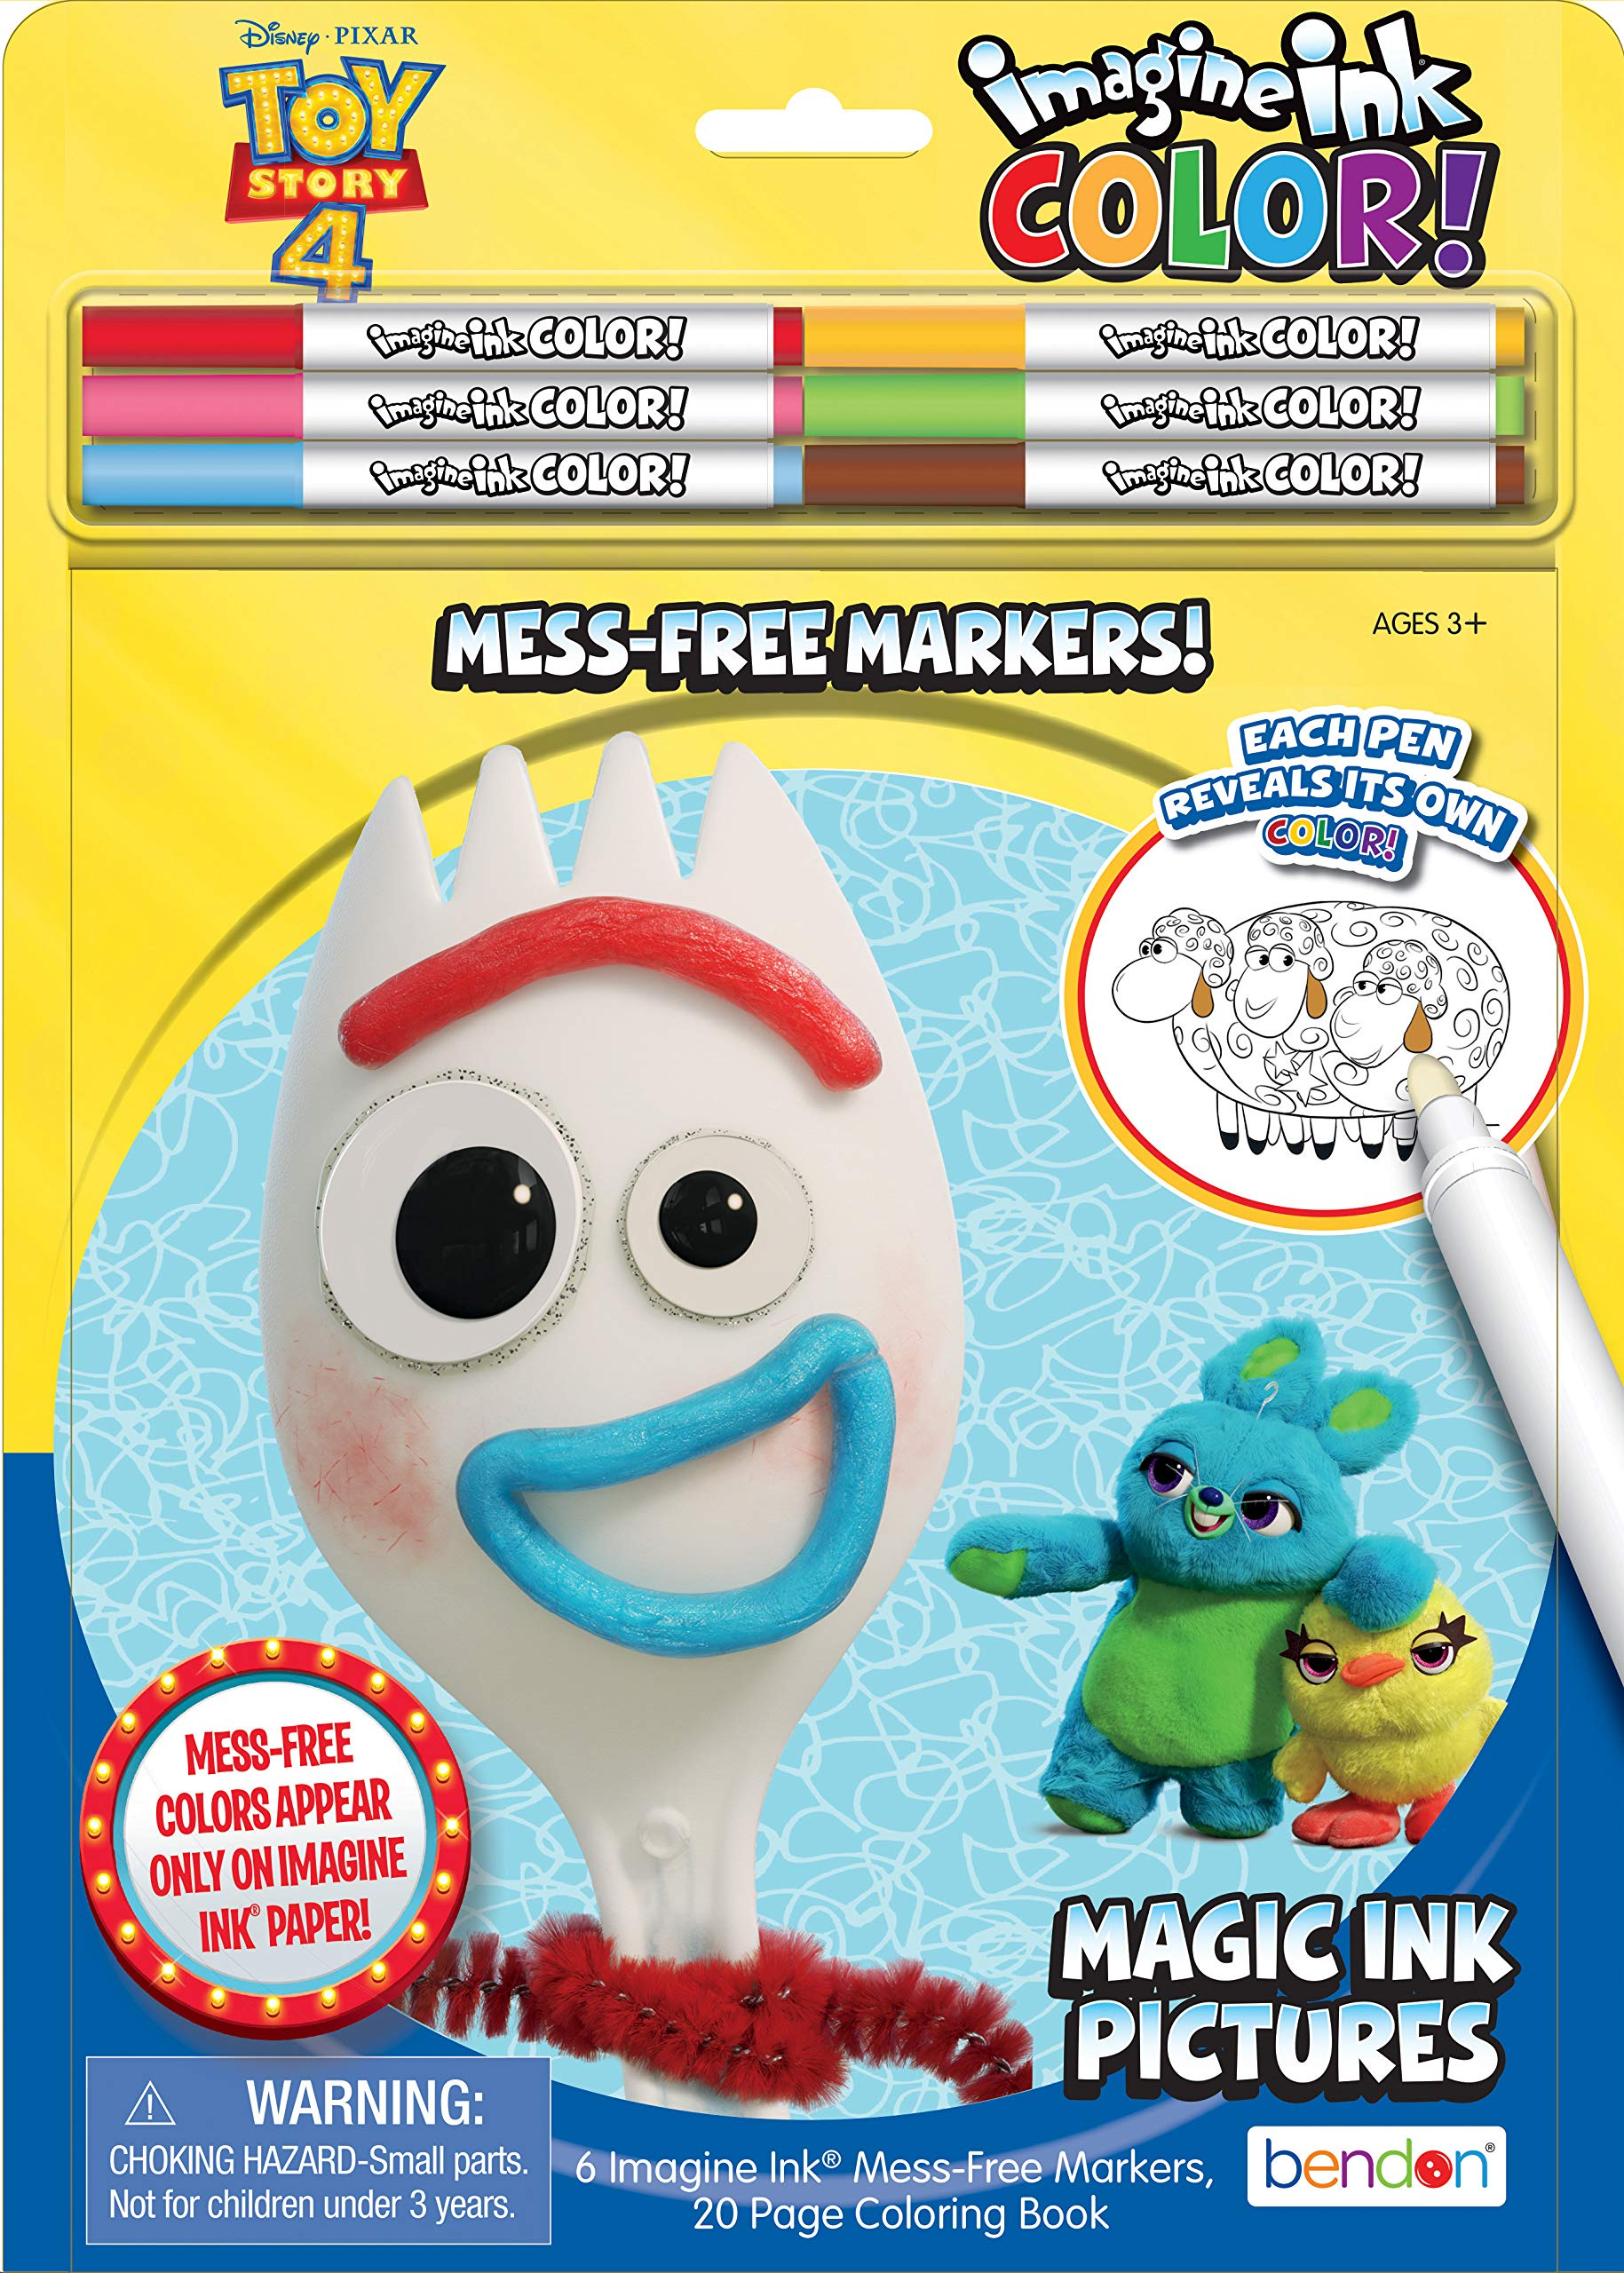 Bendon Toy Story 4 Imagine Ink Color Pad, Includes 6 Markers 45408, Multicolor